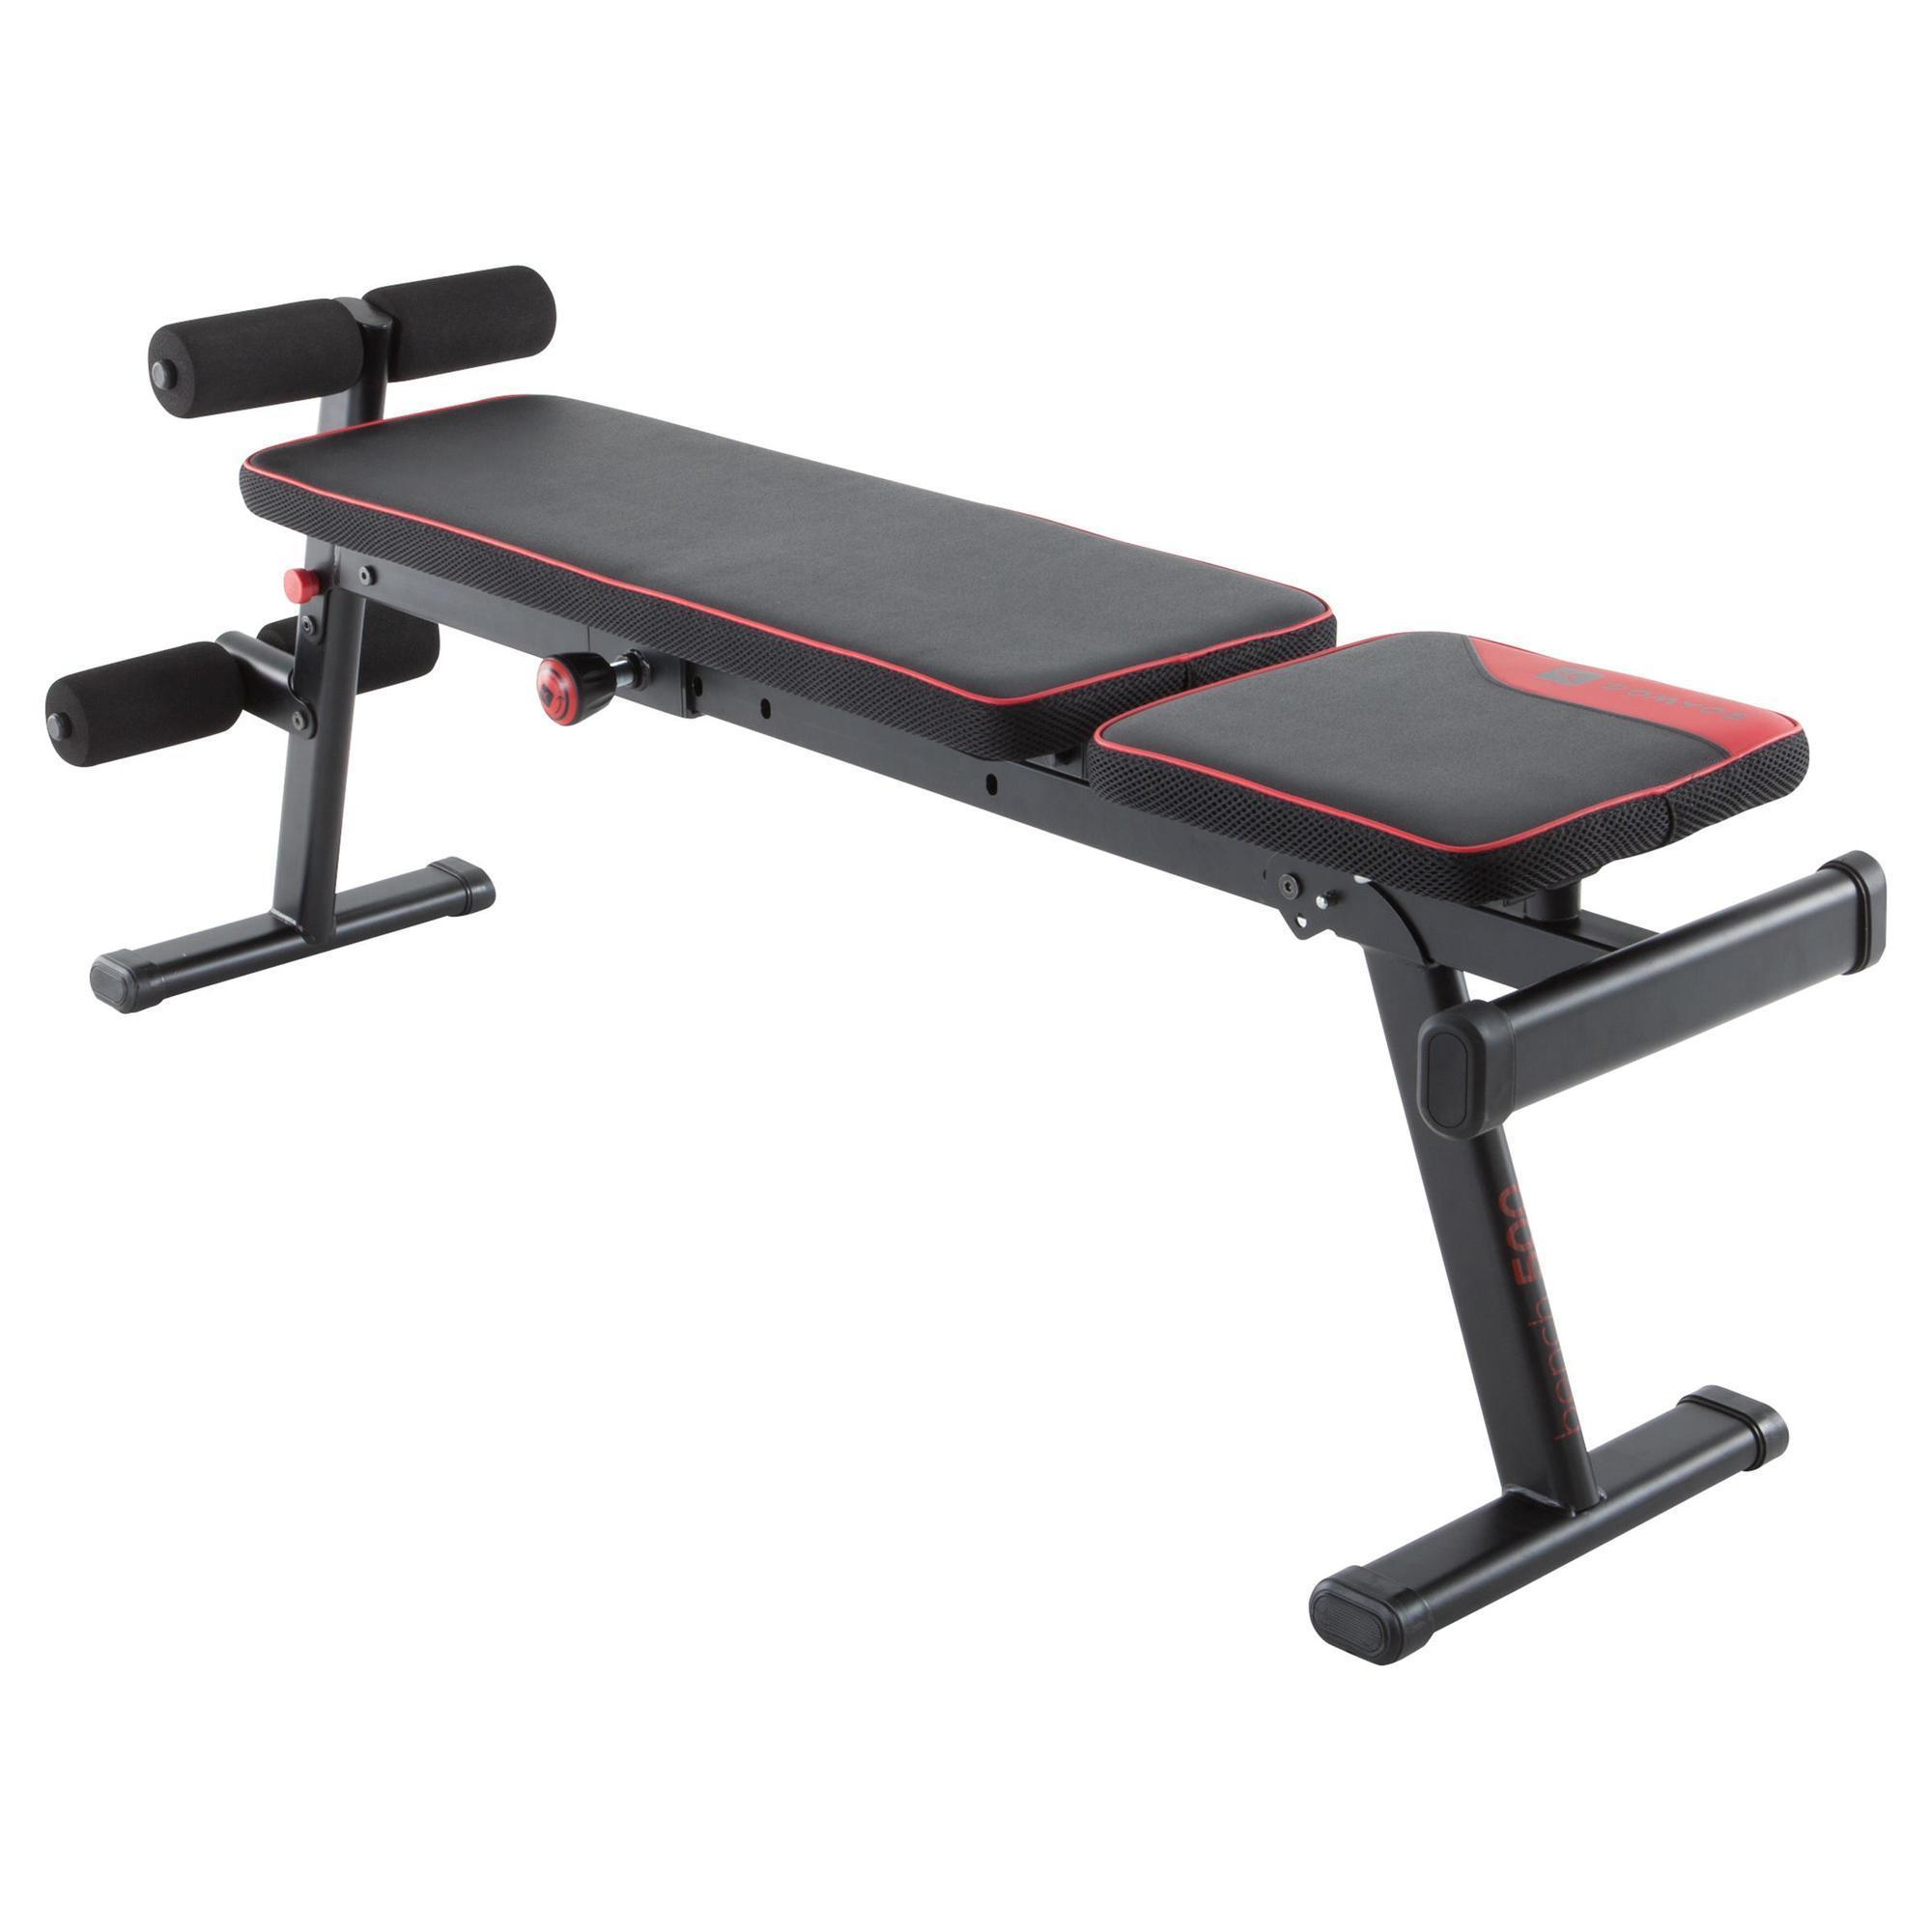 workout for equipment incline champ benches body training olympic attachment weight bench